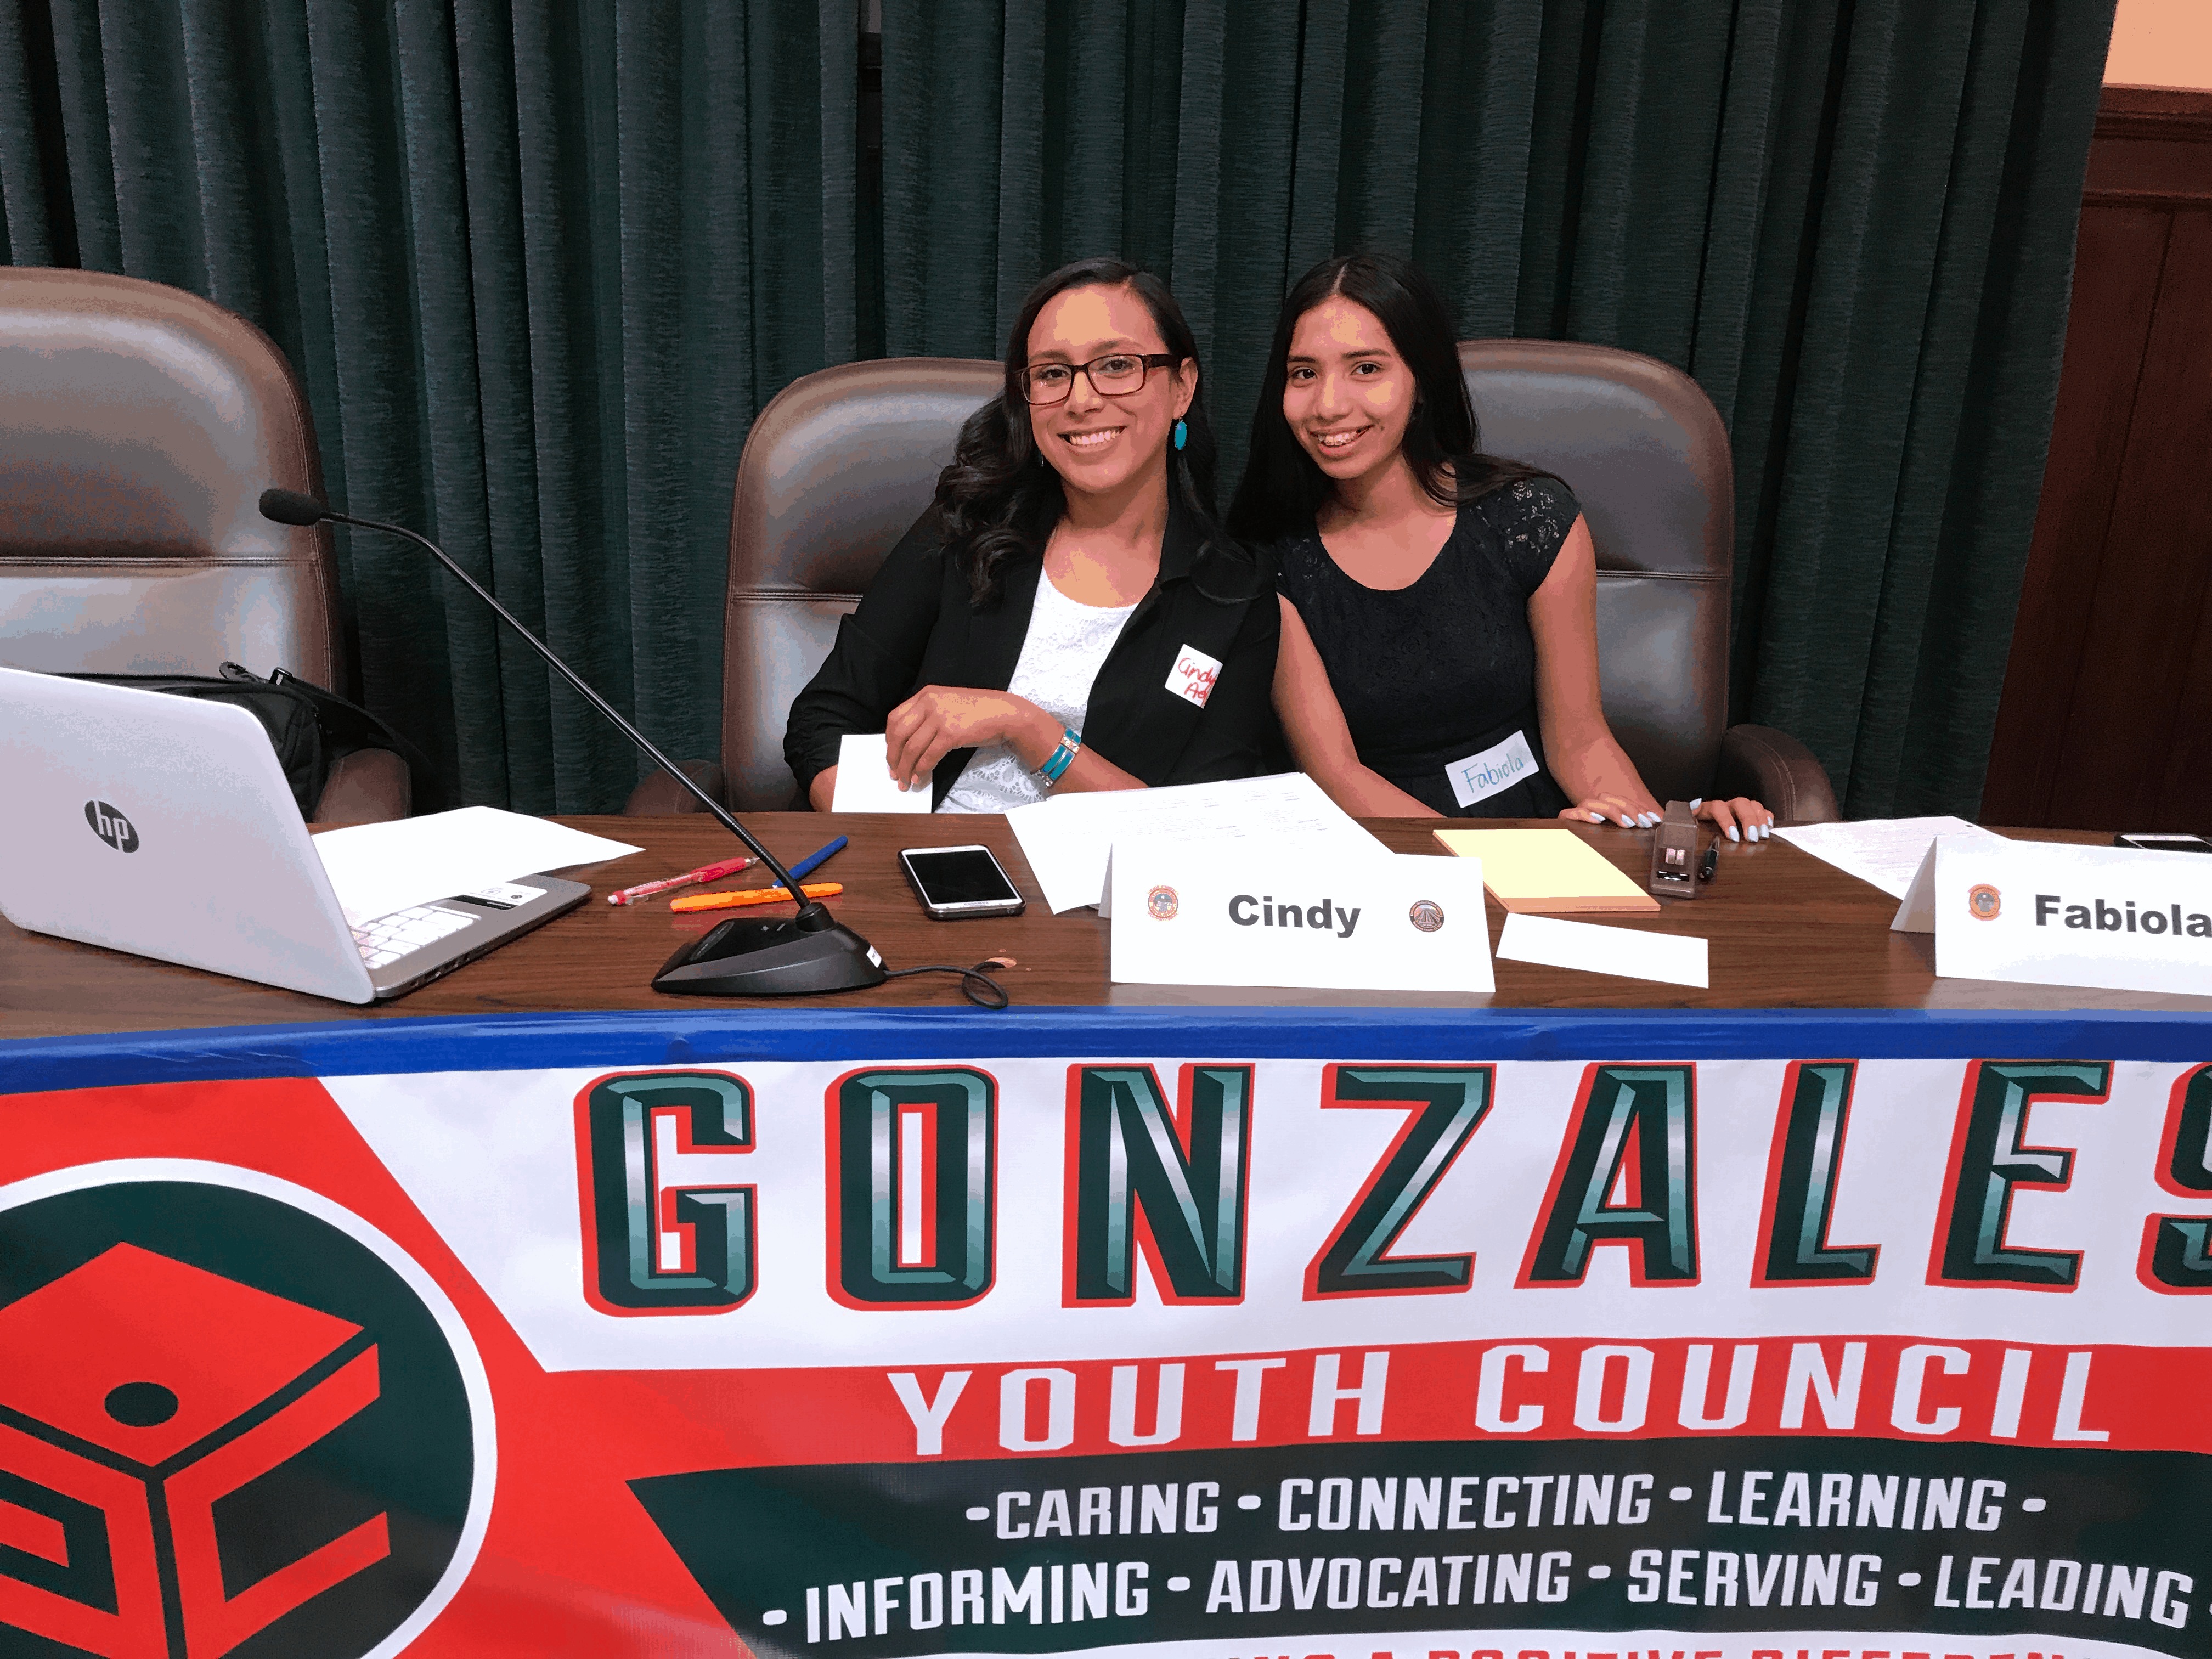 Youth Commissioners Cindy Aguilar and Fabiola Moreno running Youth Council Meeting (1)